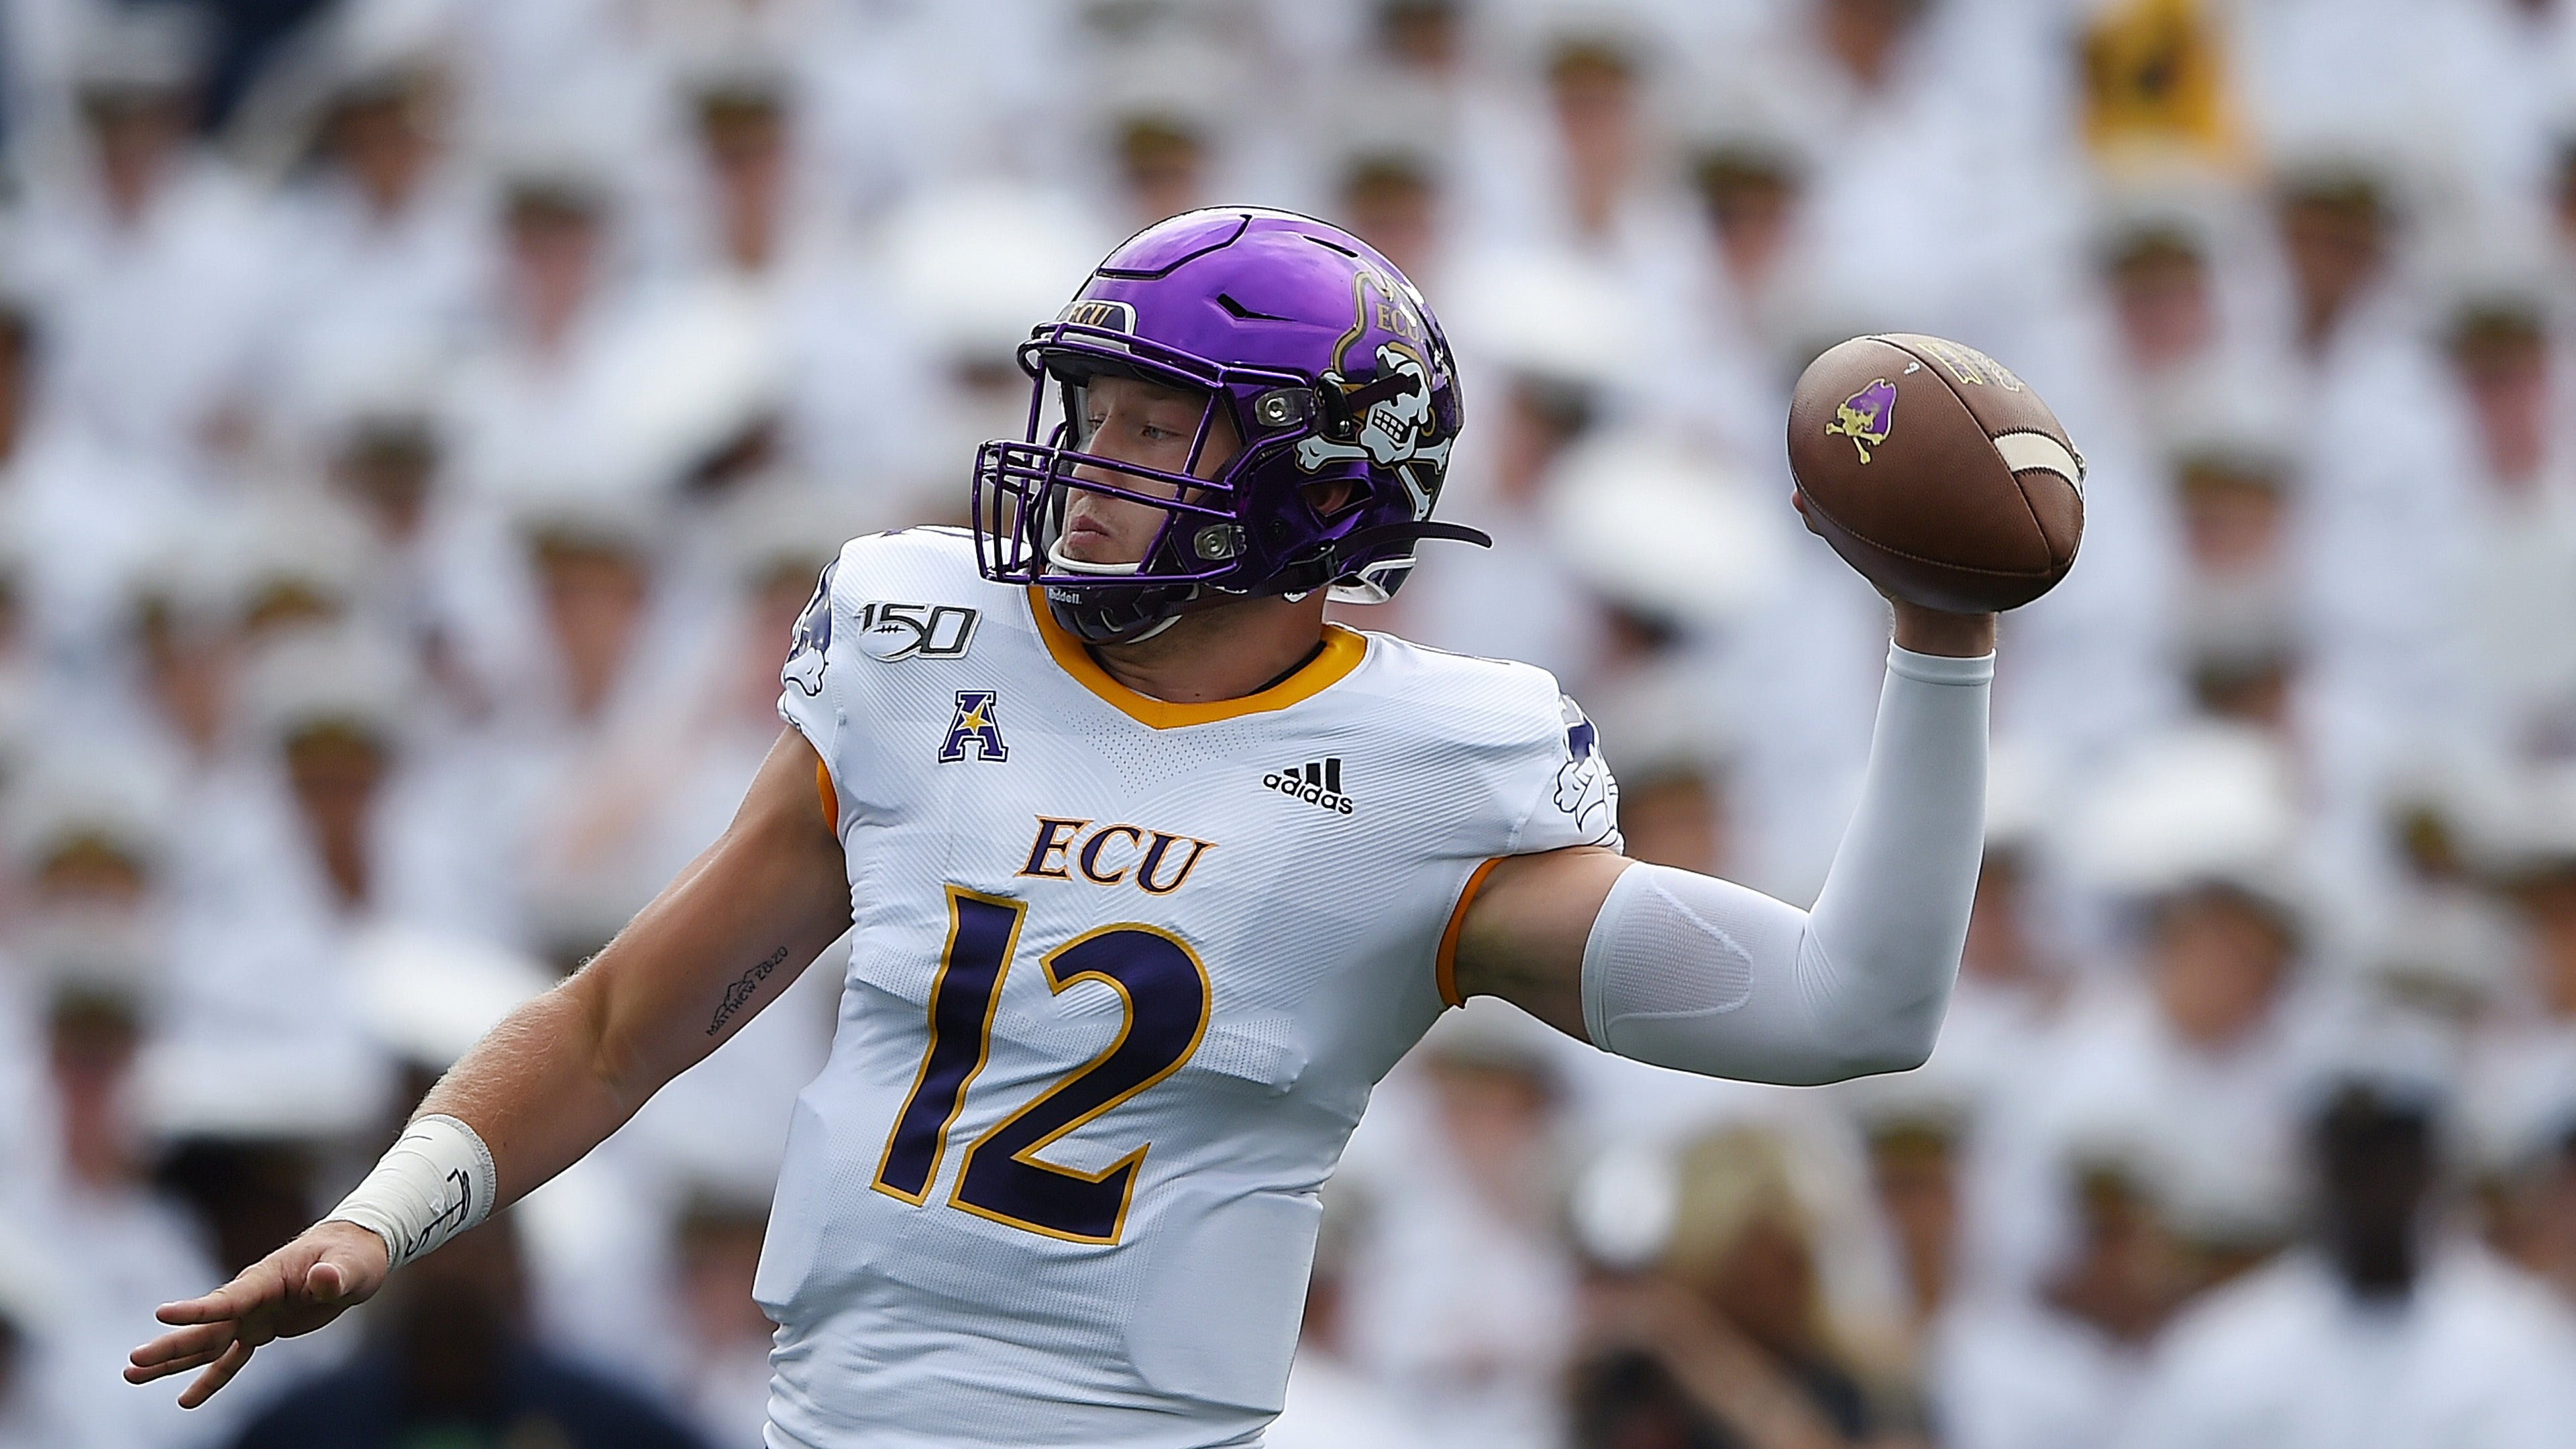 online retailer 003e9 892e3 Verity, Ahlers lead ECU to 19-7 win over William & Mary ...